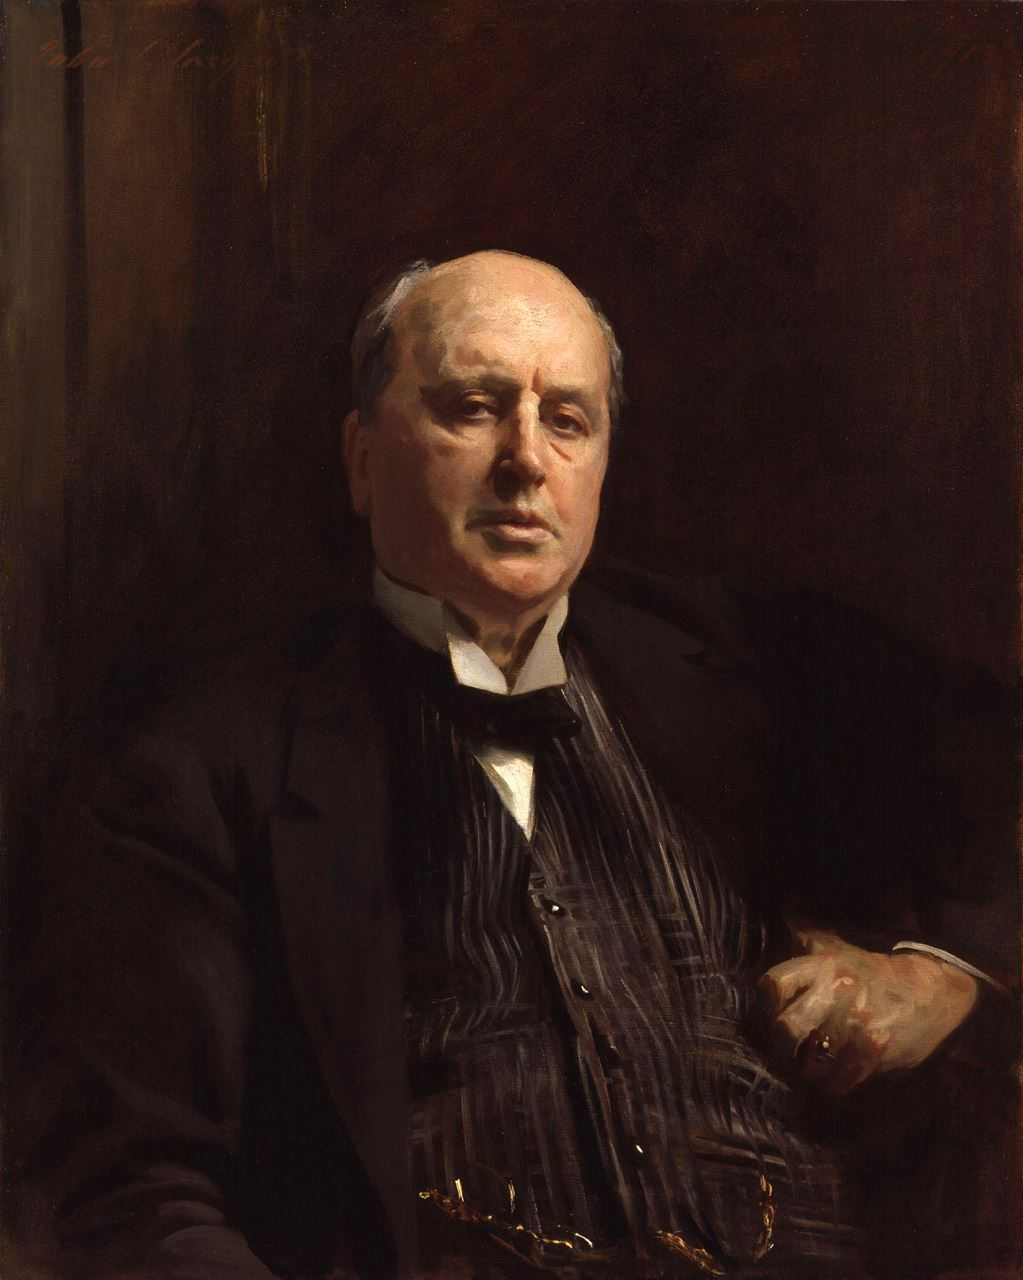 Reading Henry James with James Kraft